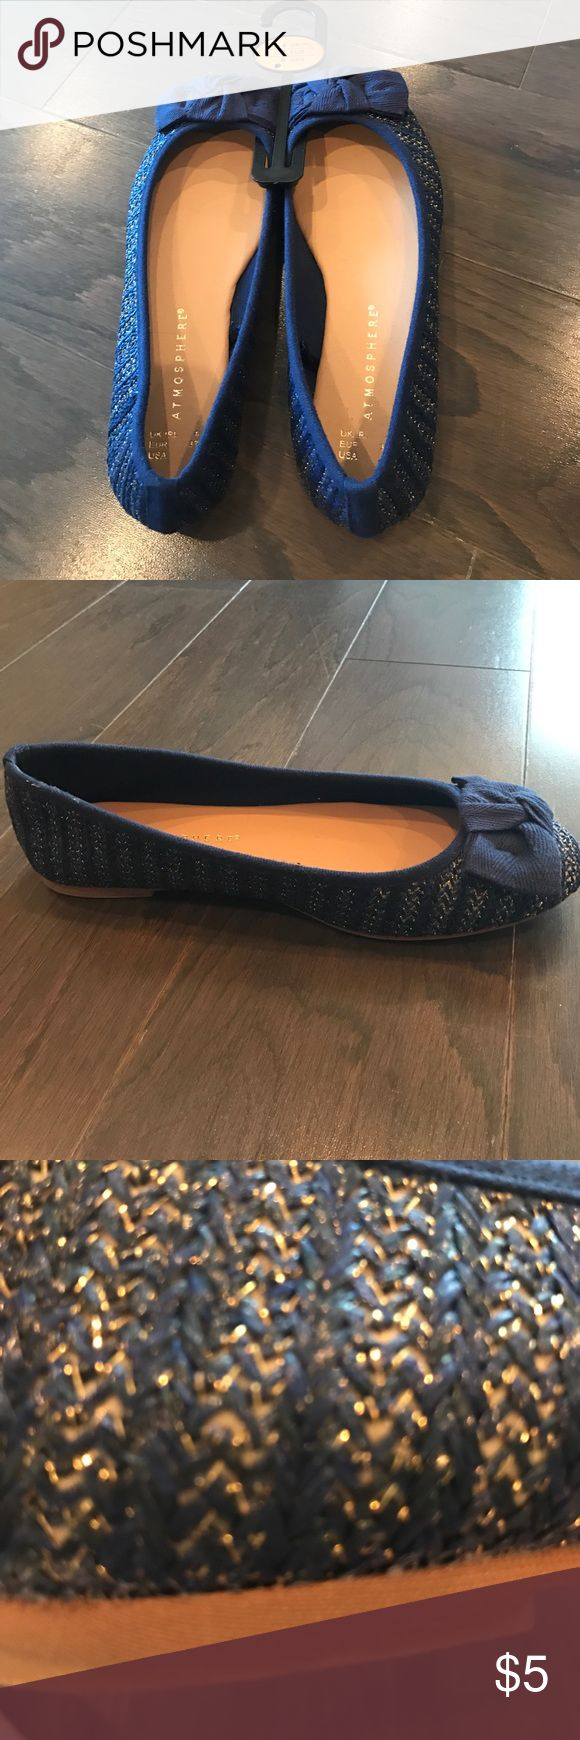 NWOT Slip on shoes Great for spring, summer or fall. primark Shoes Flats & Loafers